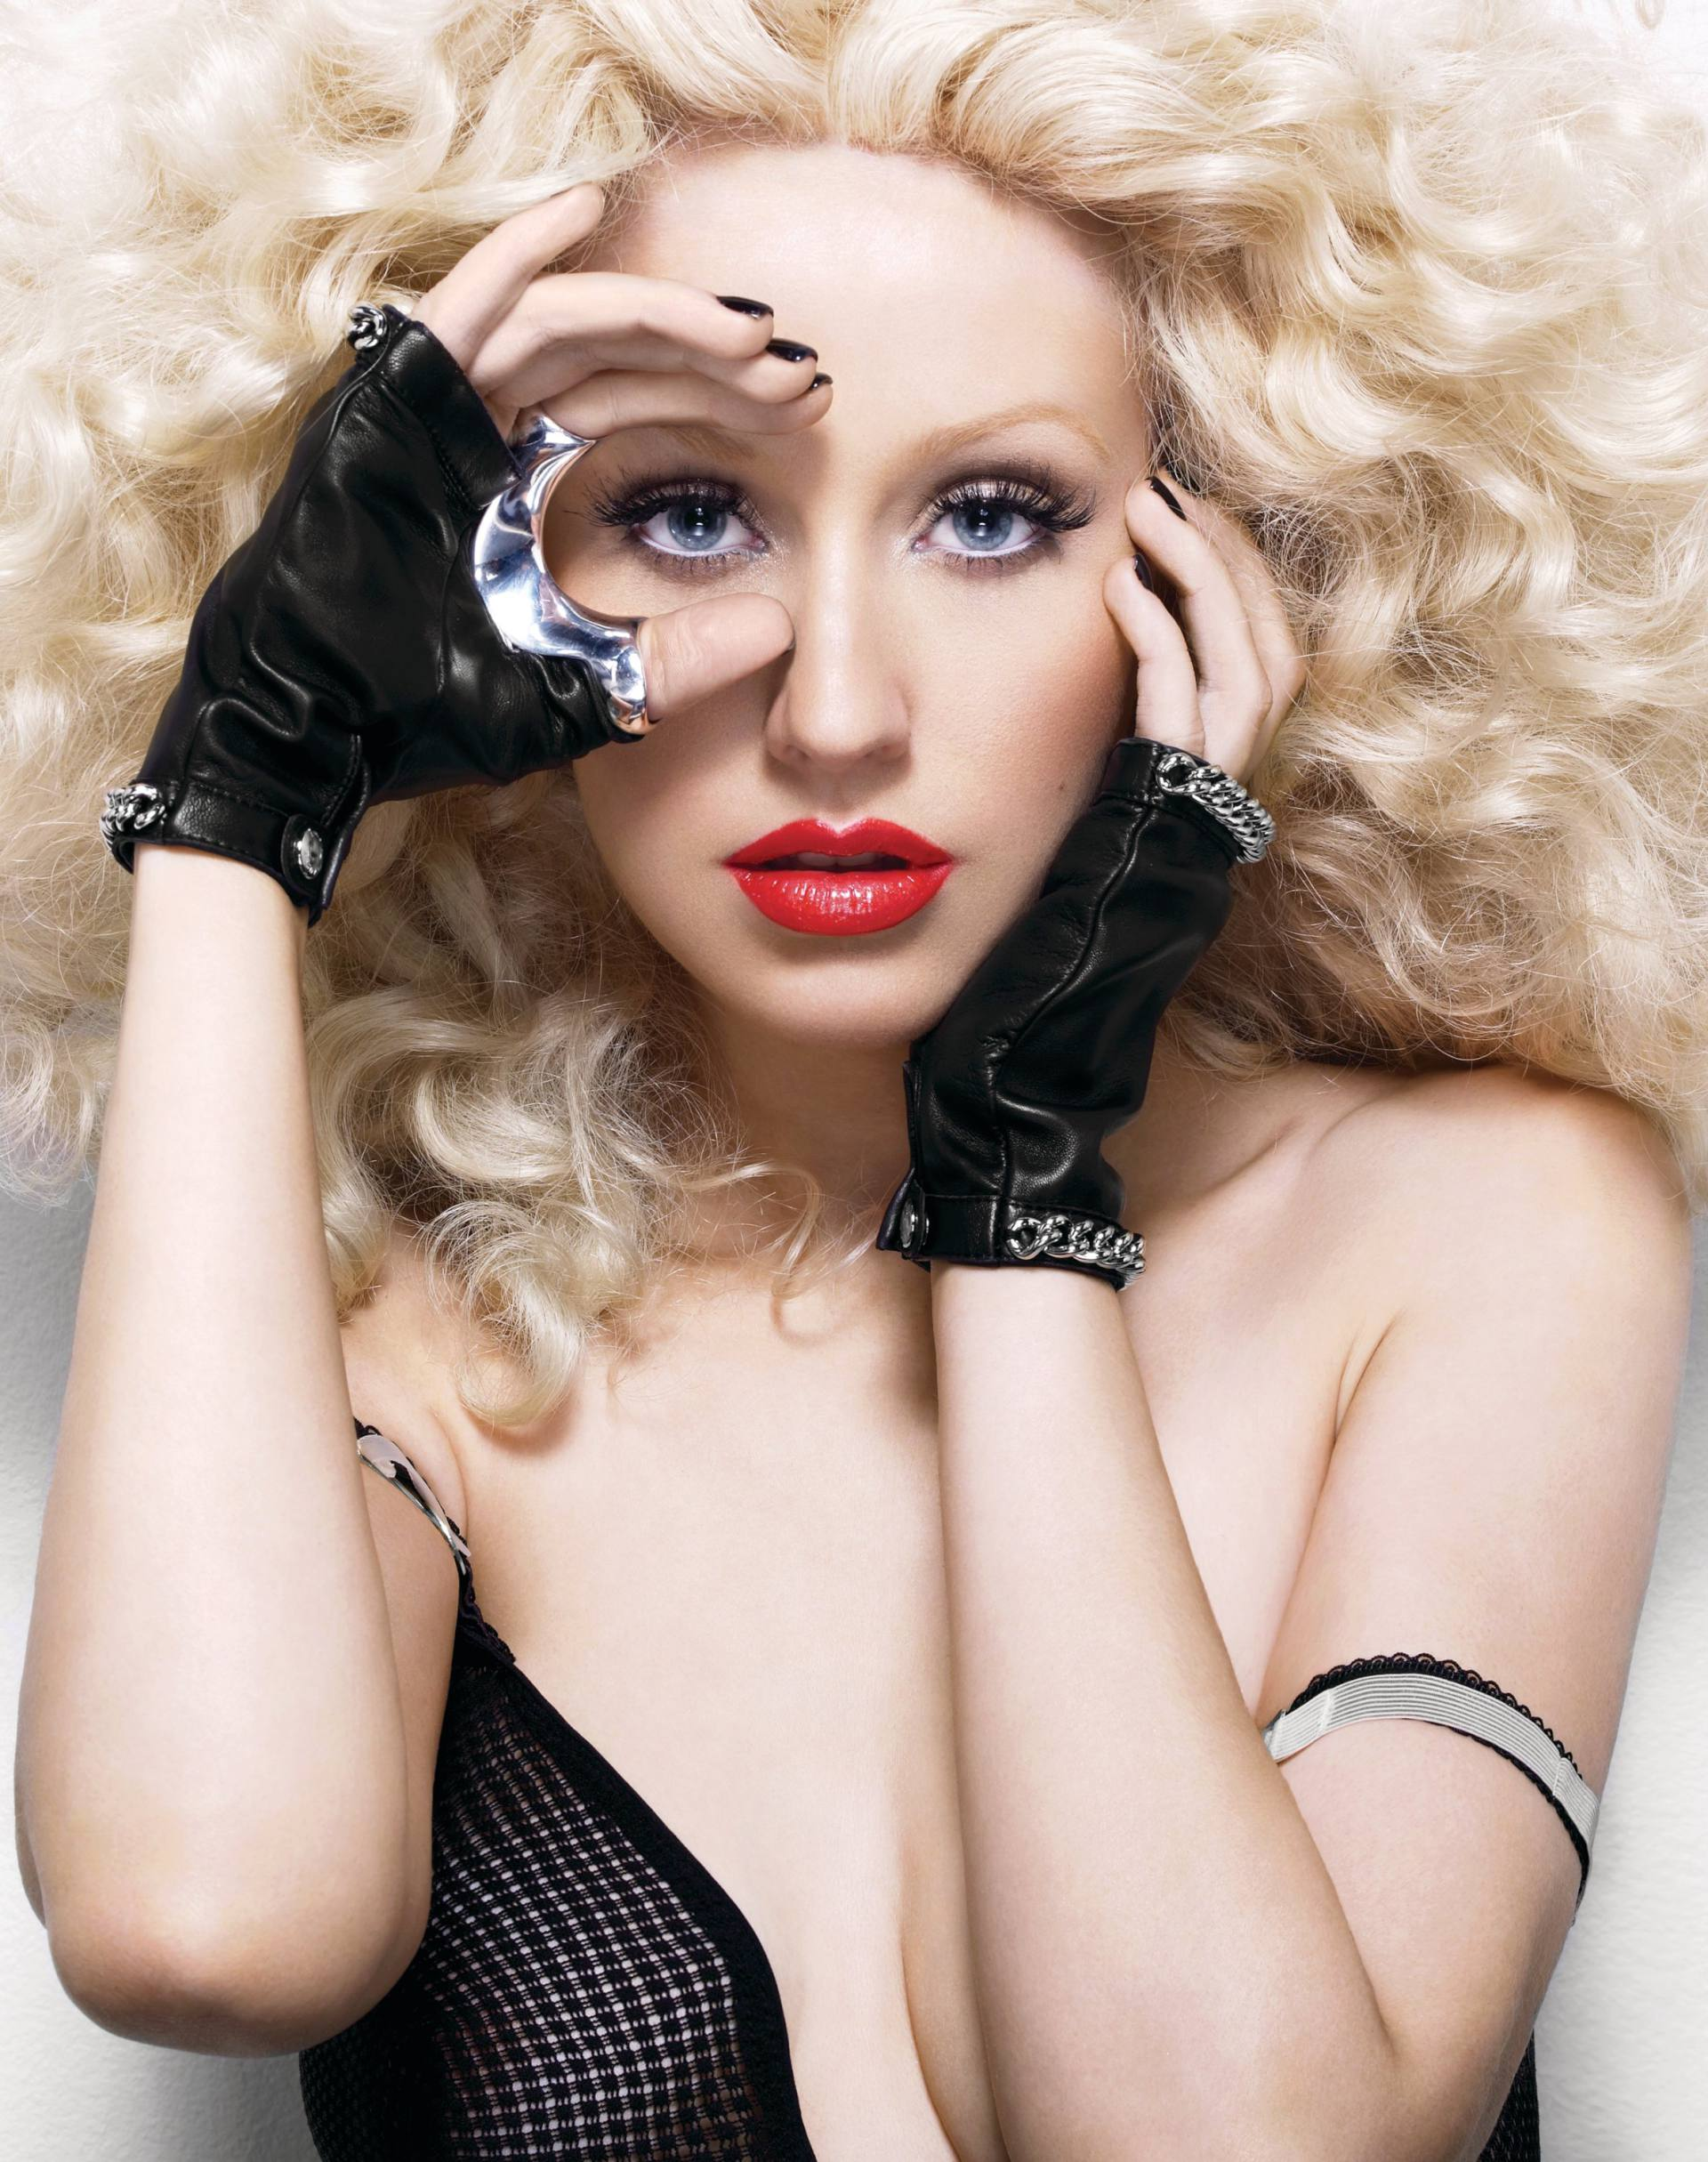 Christina Aguilera – Sexy Boobs In Naked Photoshoot Outtakes From Bionic Album Photoshoot 0013